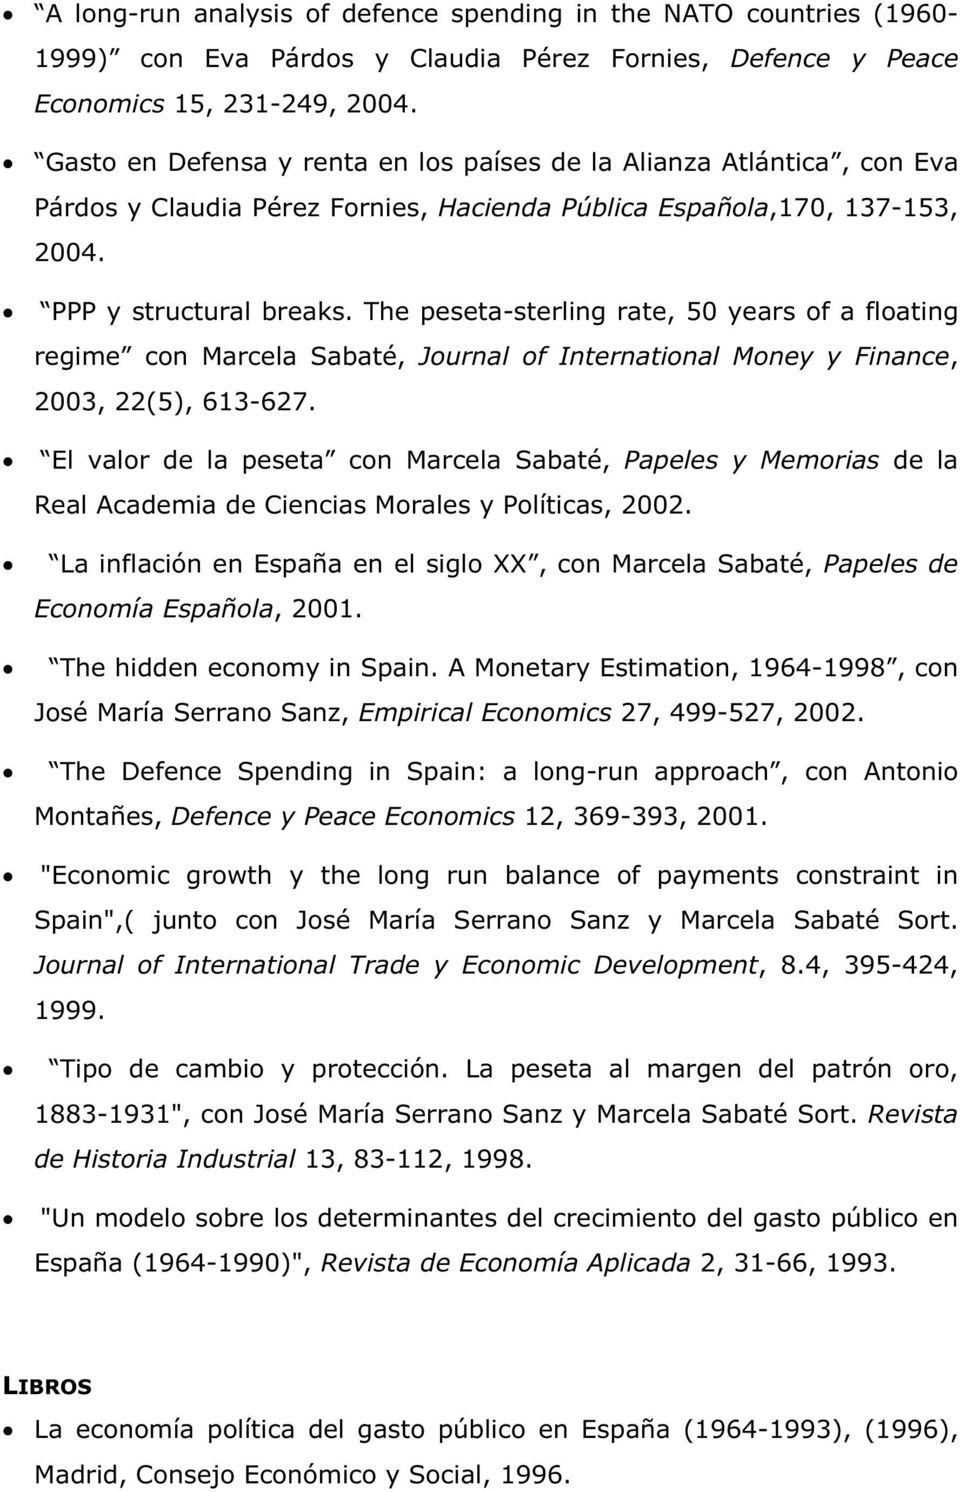 The peseta-sterling rate, 50 years of a floating regime con Marcela Sabaté, Journal of International Money y Finance, 2003, 22(5), 613-627.